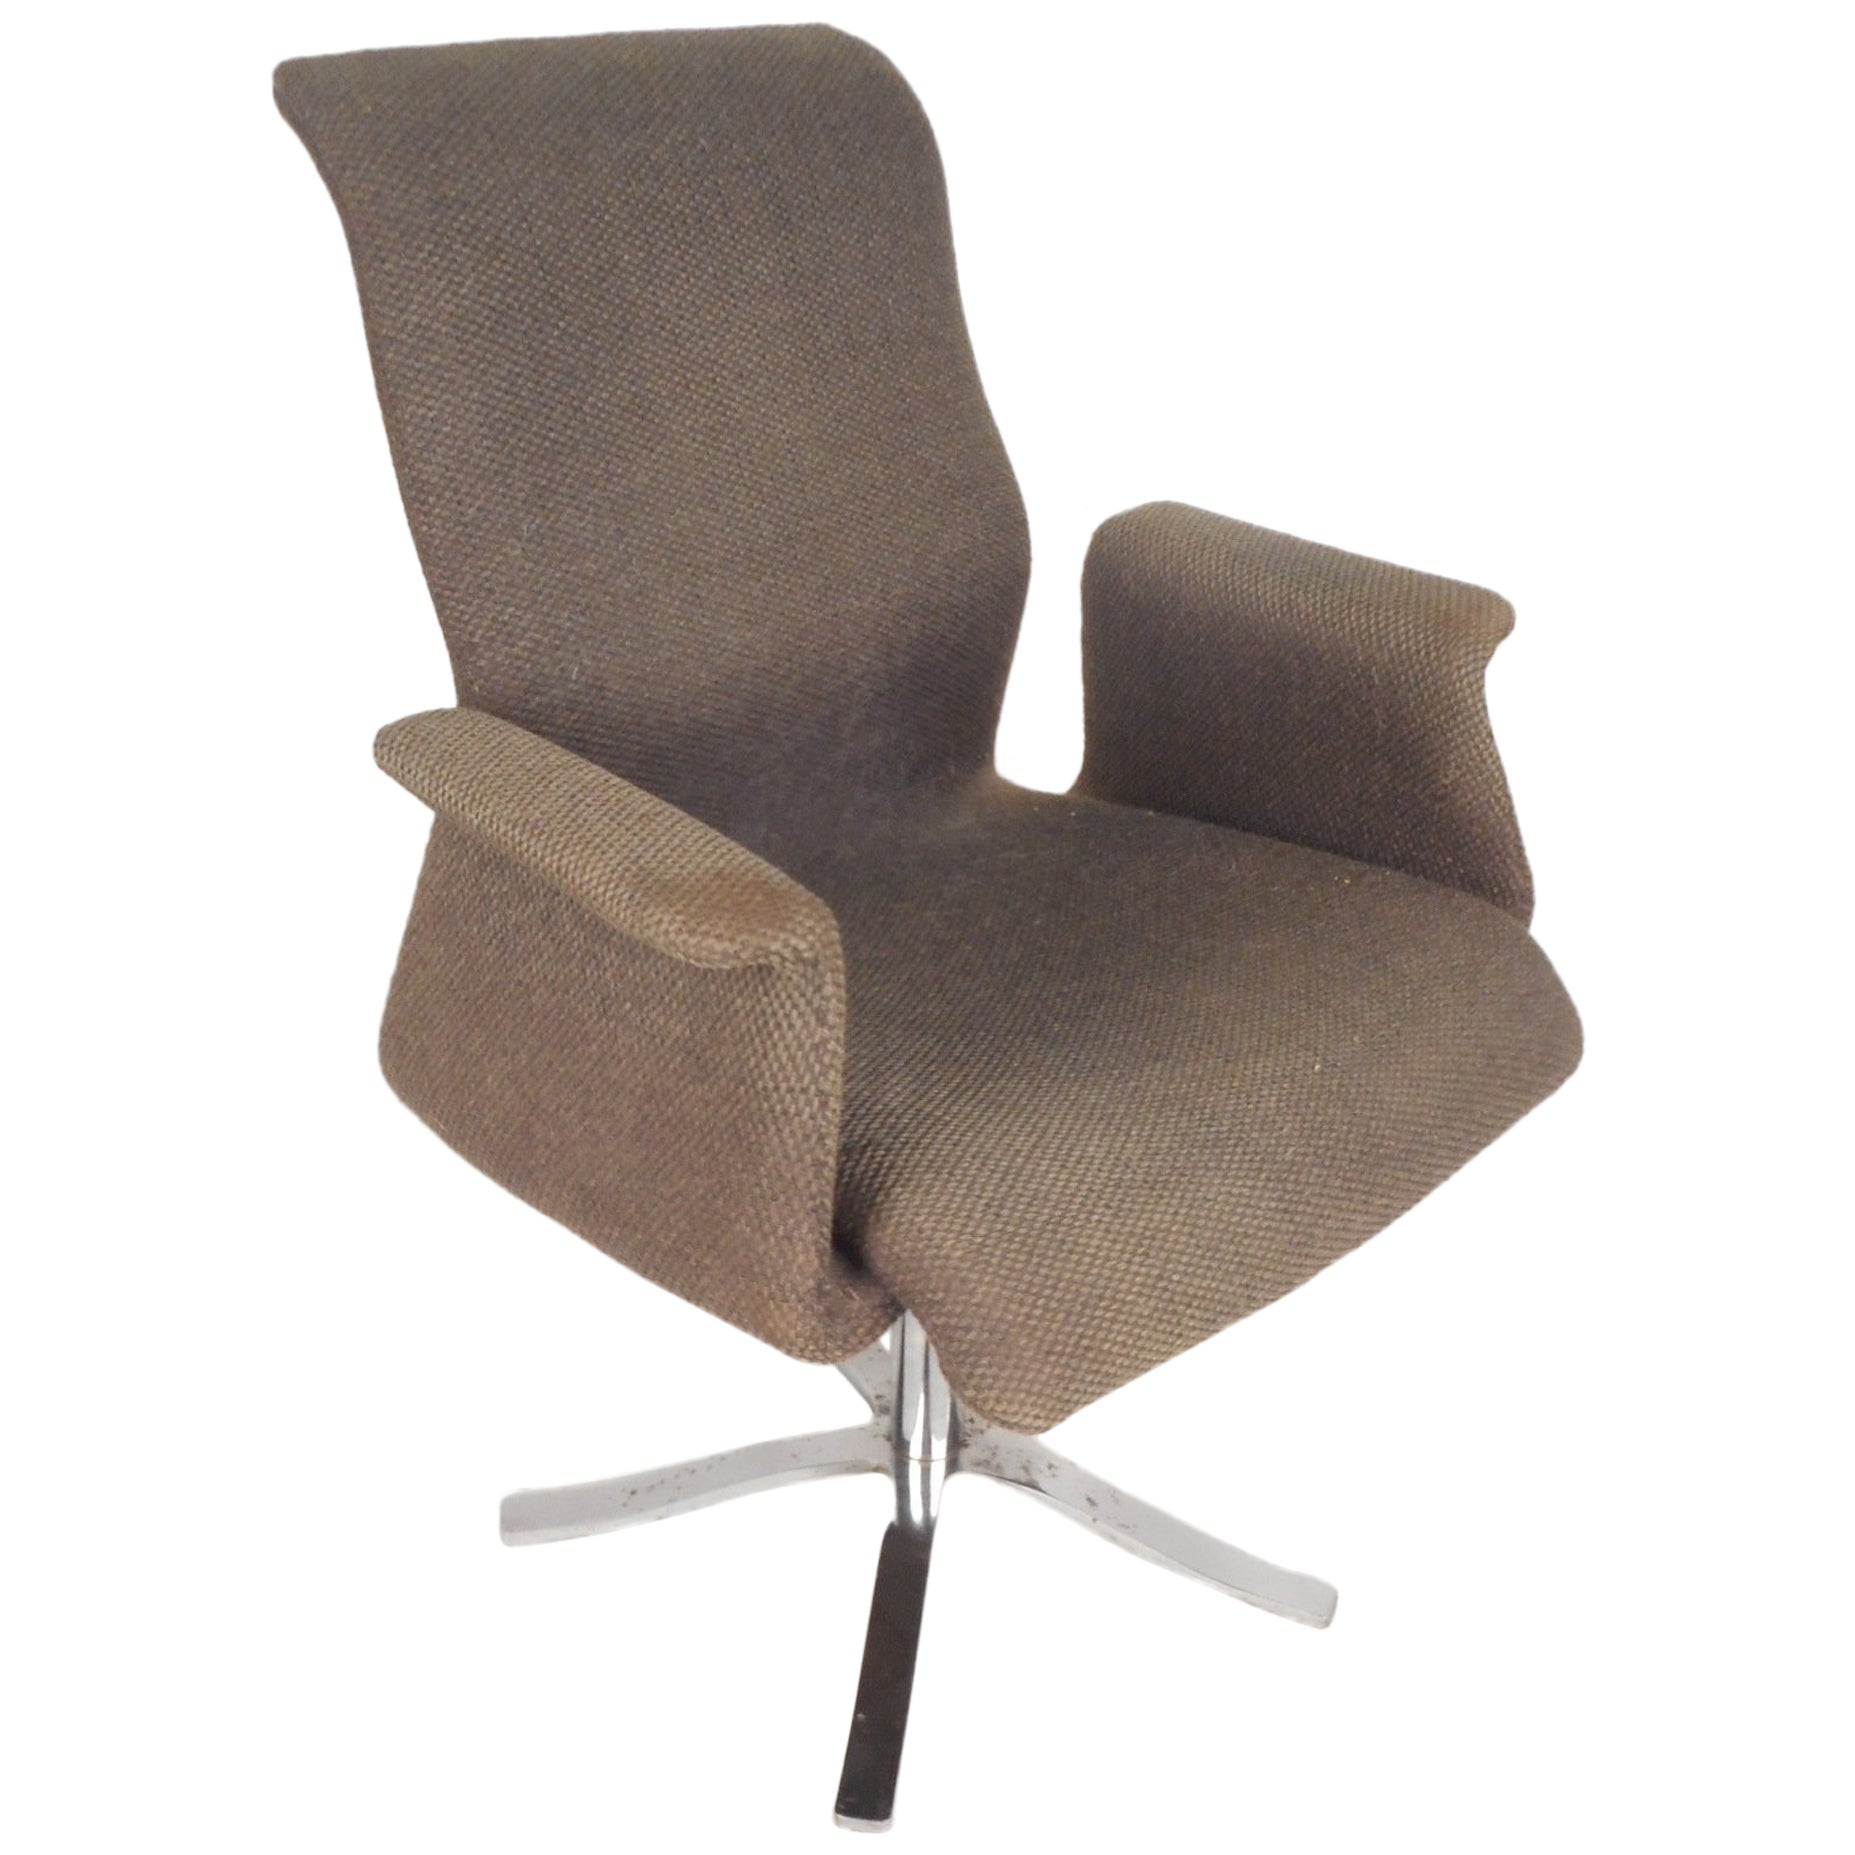 Unique Mid-Century Modern Swivel Lounge Chair